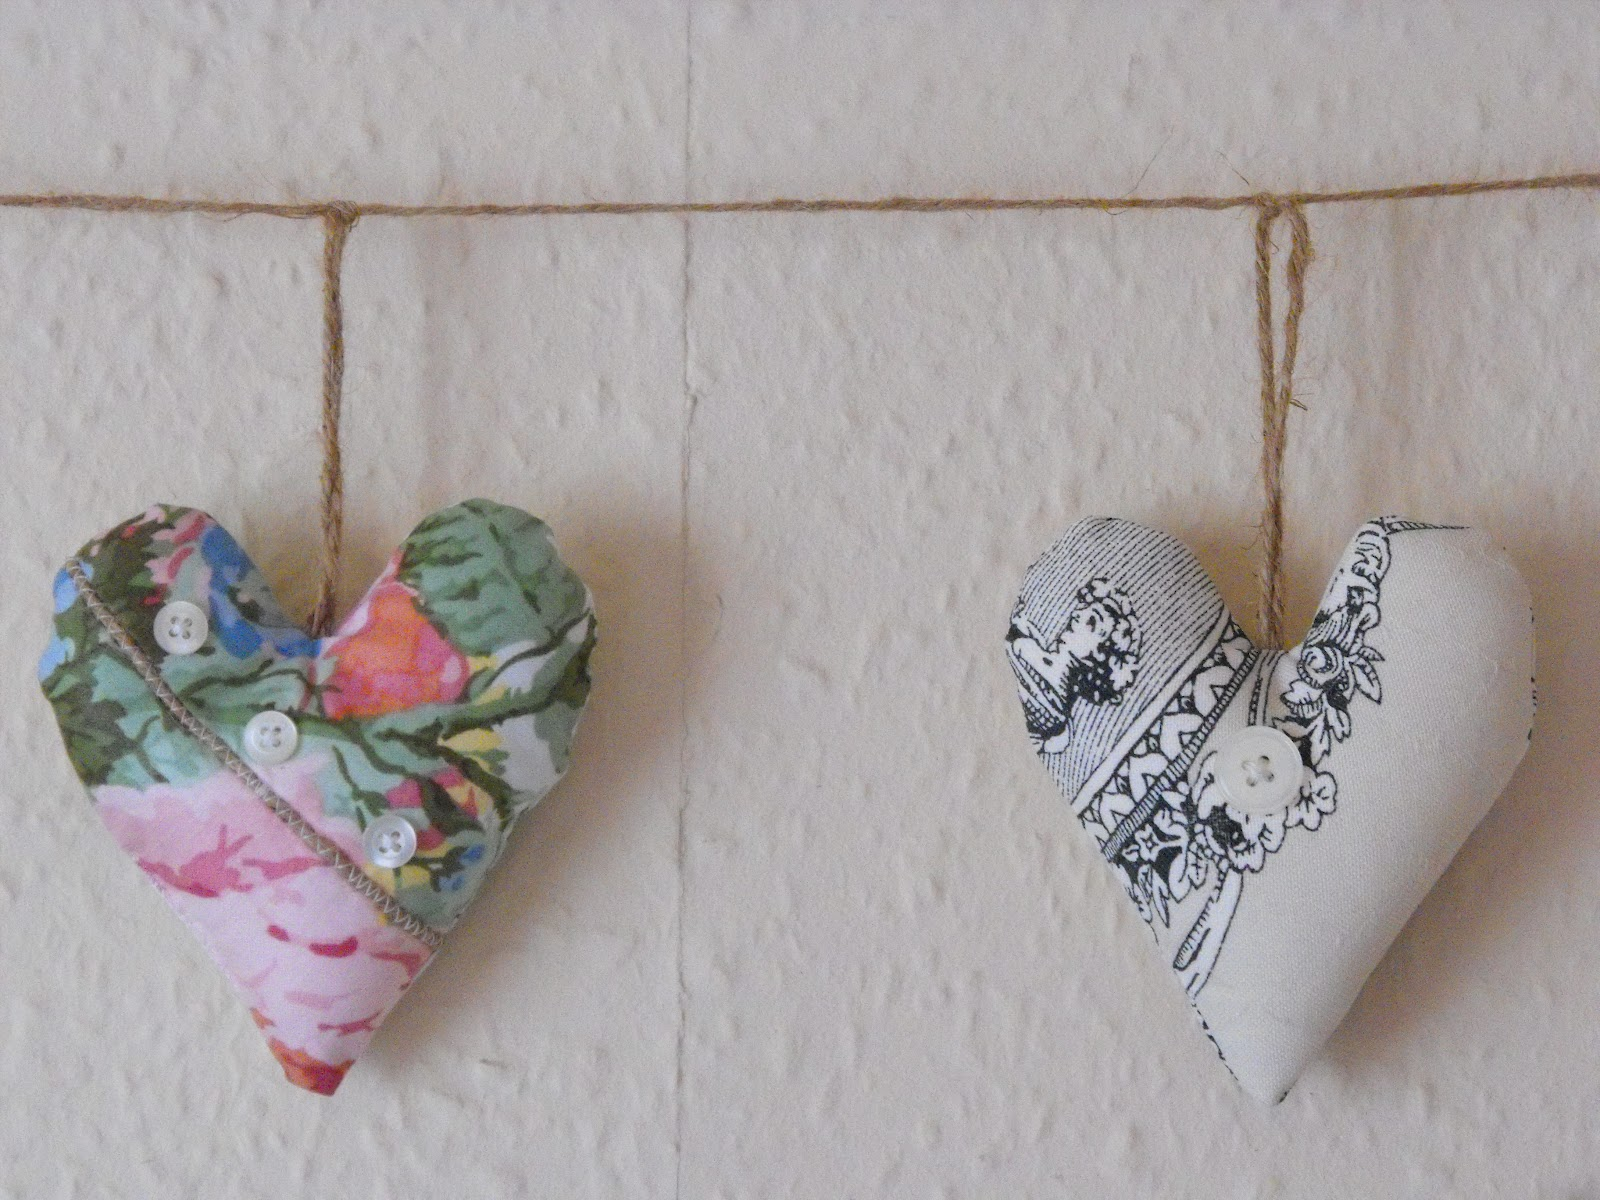 A few of Amy's favourite things   : hearts, buttons, ribbons